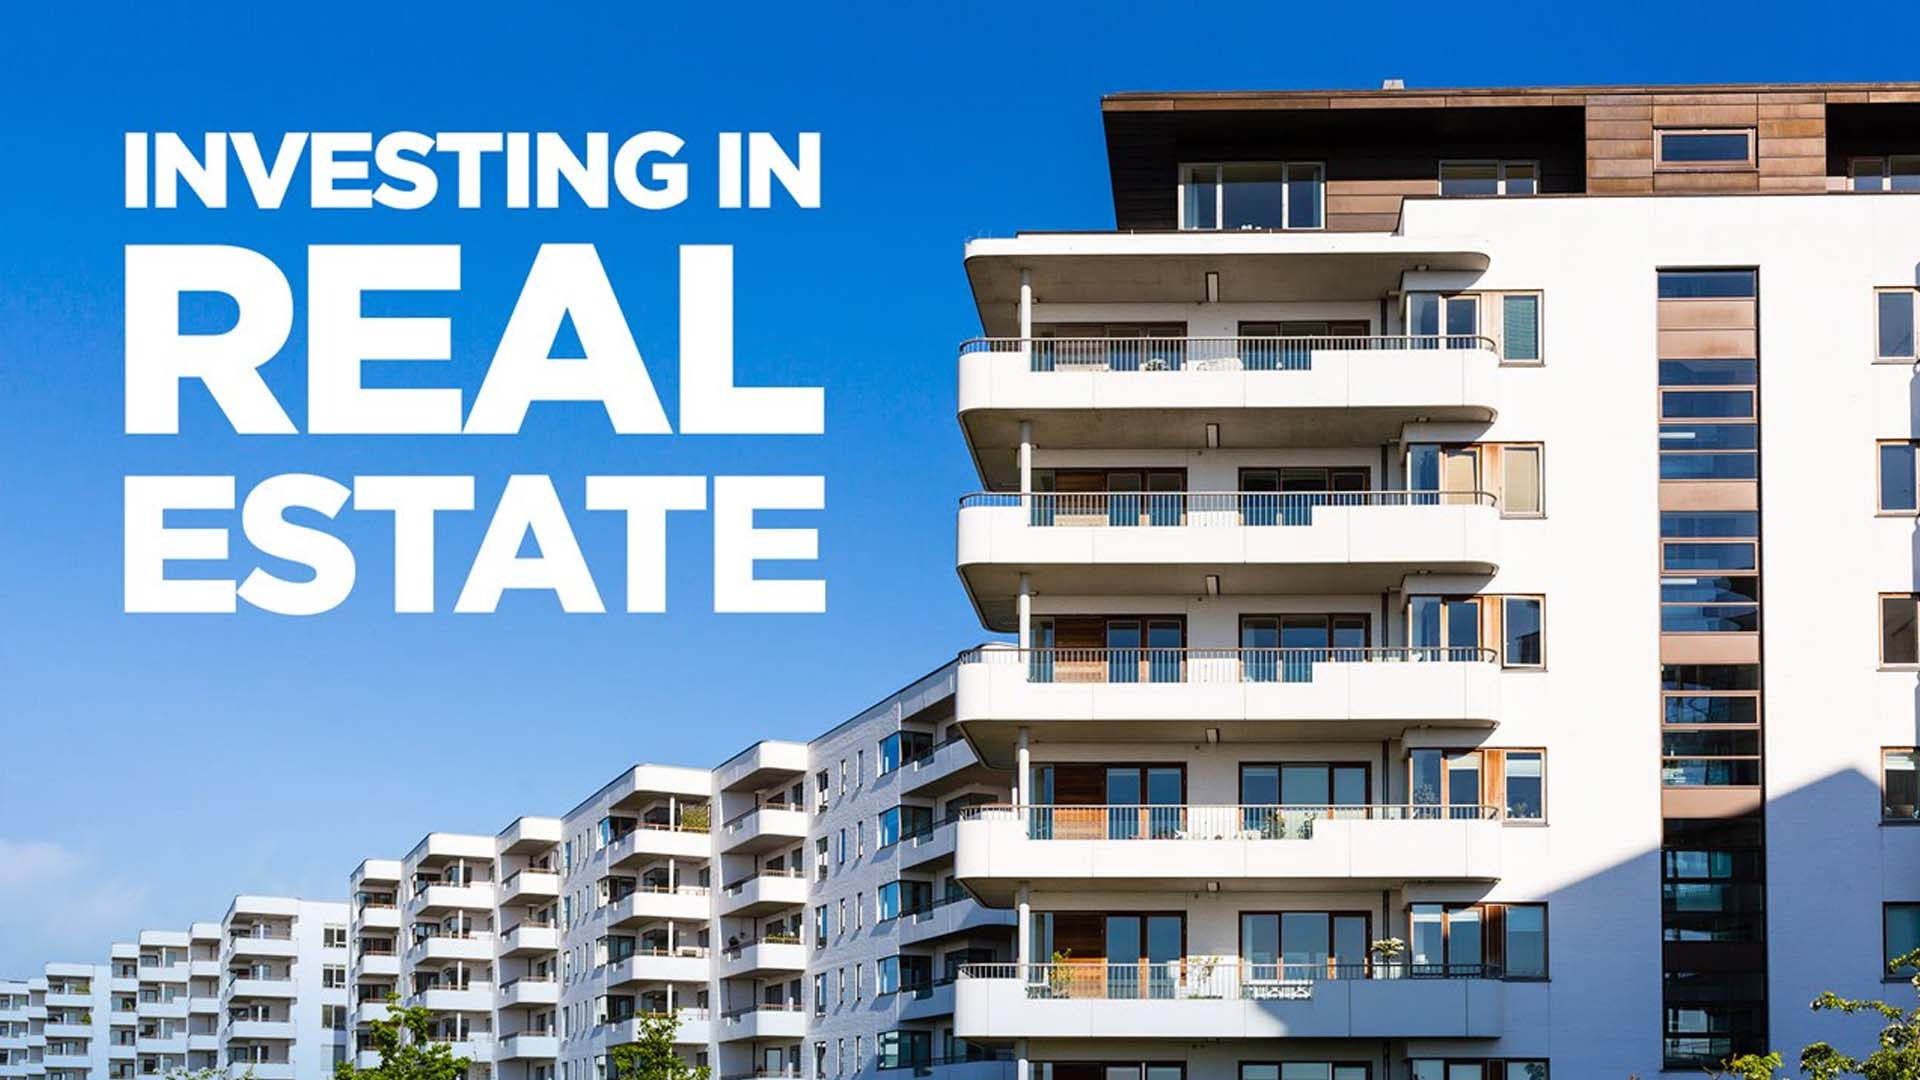 3 Real Estate Investment Tips to Become a Real Estate Investor